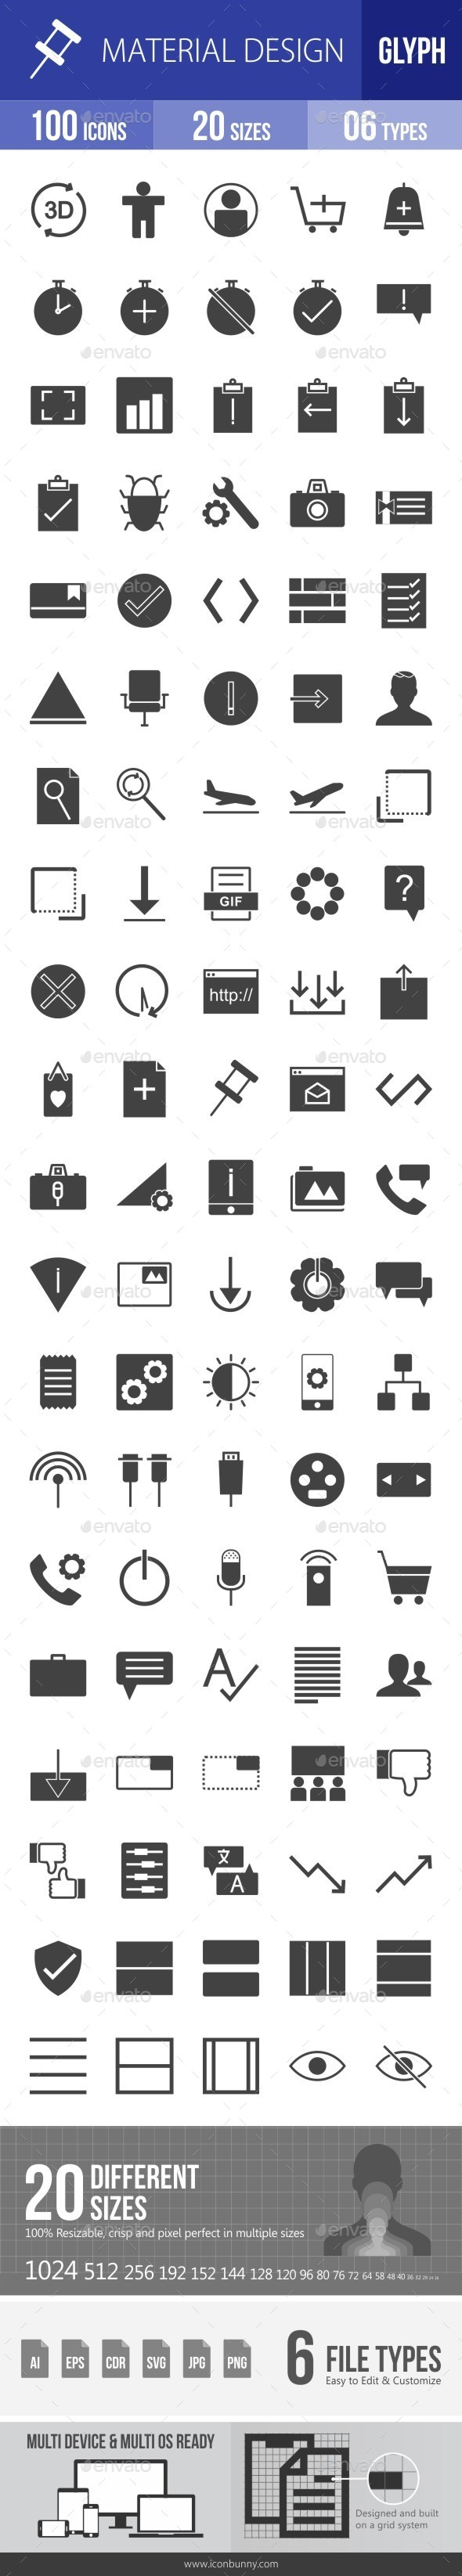 Material Design Glyph Icons - Icons